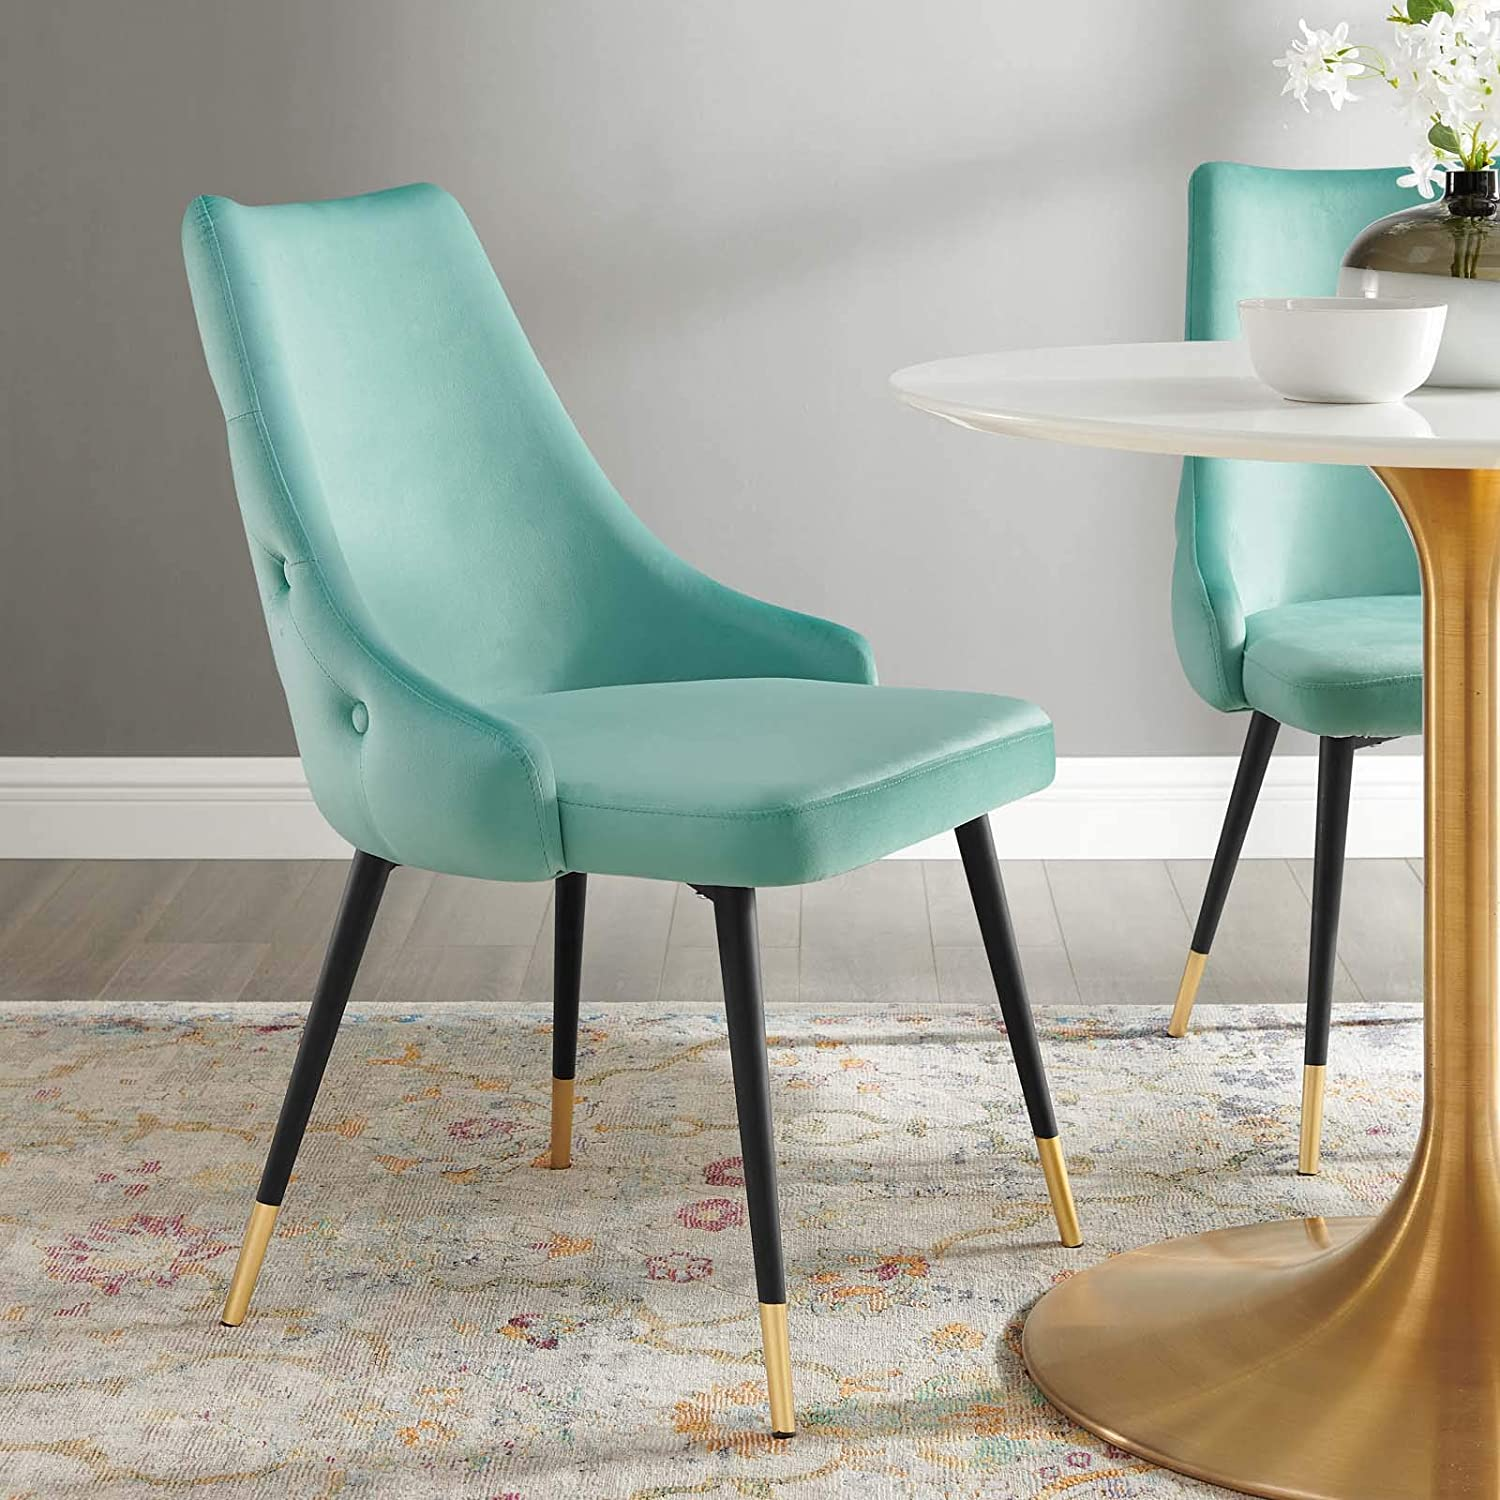 Modway Adorn Tufted Max 71% OFF Performance Velvet Mint Side Dining Chair sold out